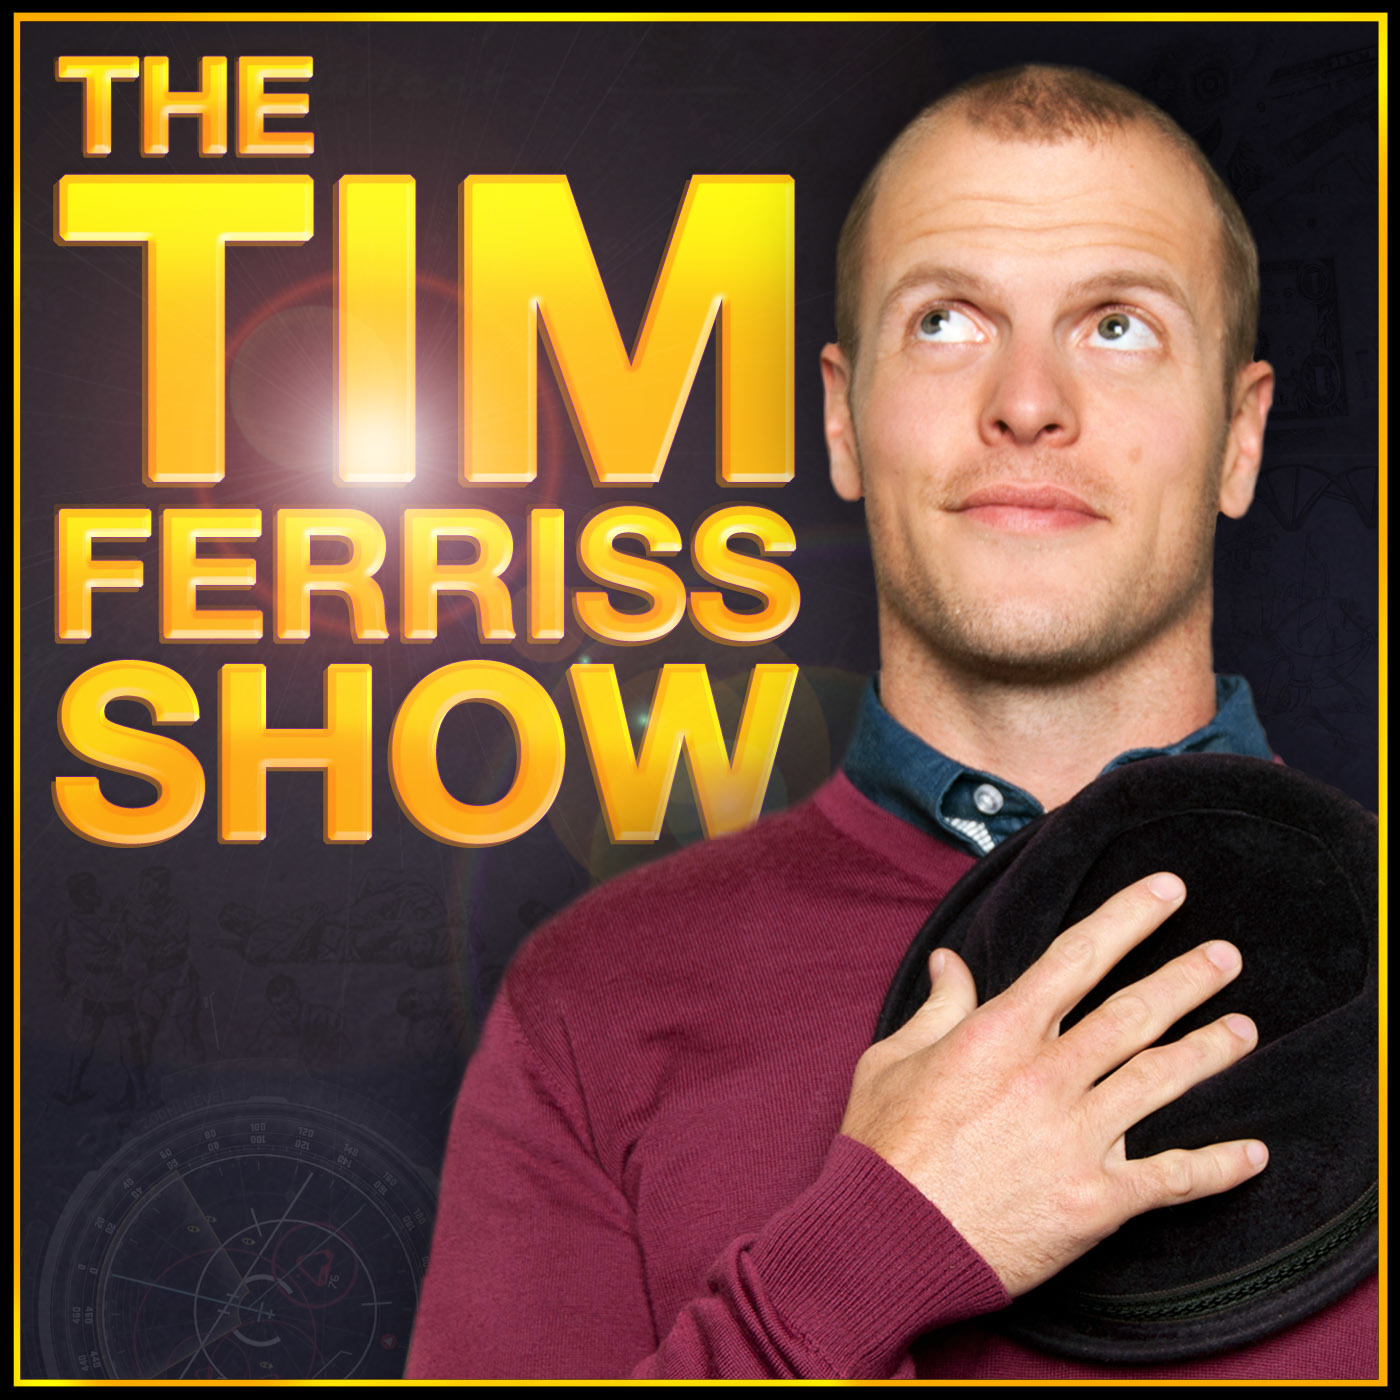 The Tim Ferriss Show - The 4 hour work week guy who grills high achievers on their success habits; I love the way he gets into specifics. Listen